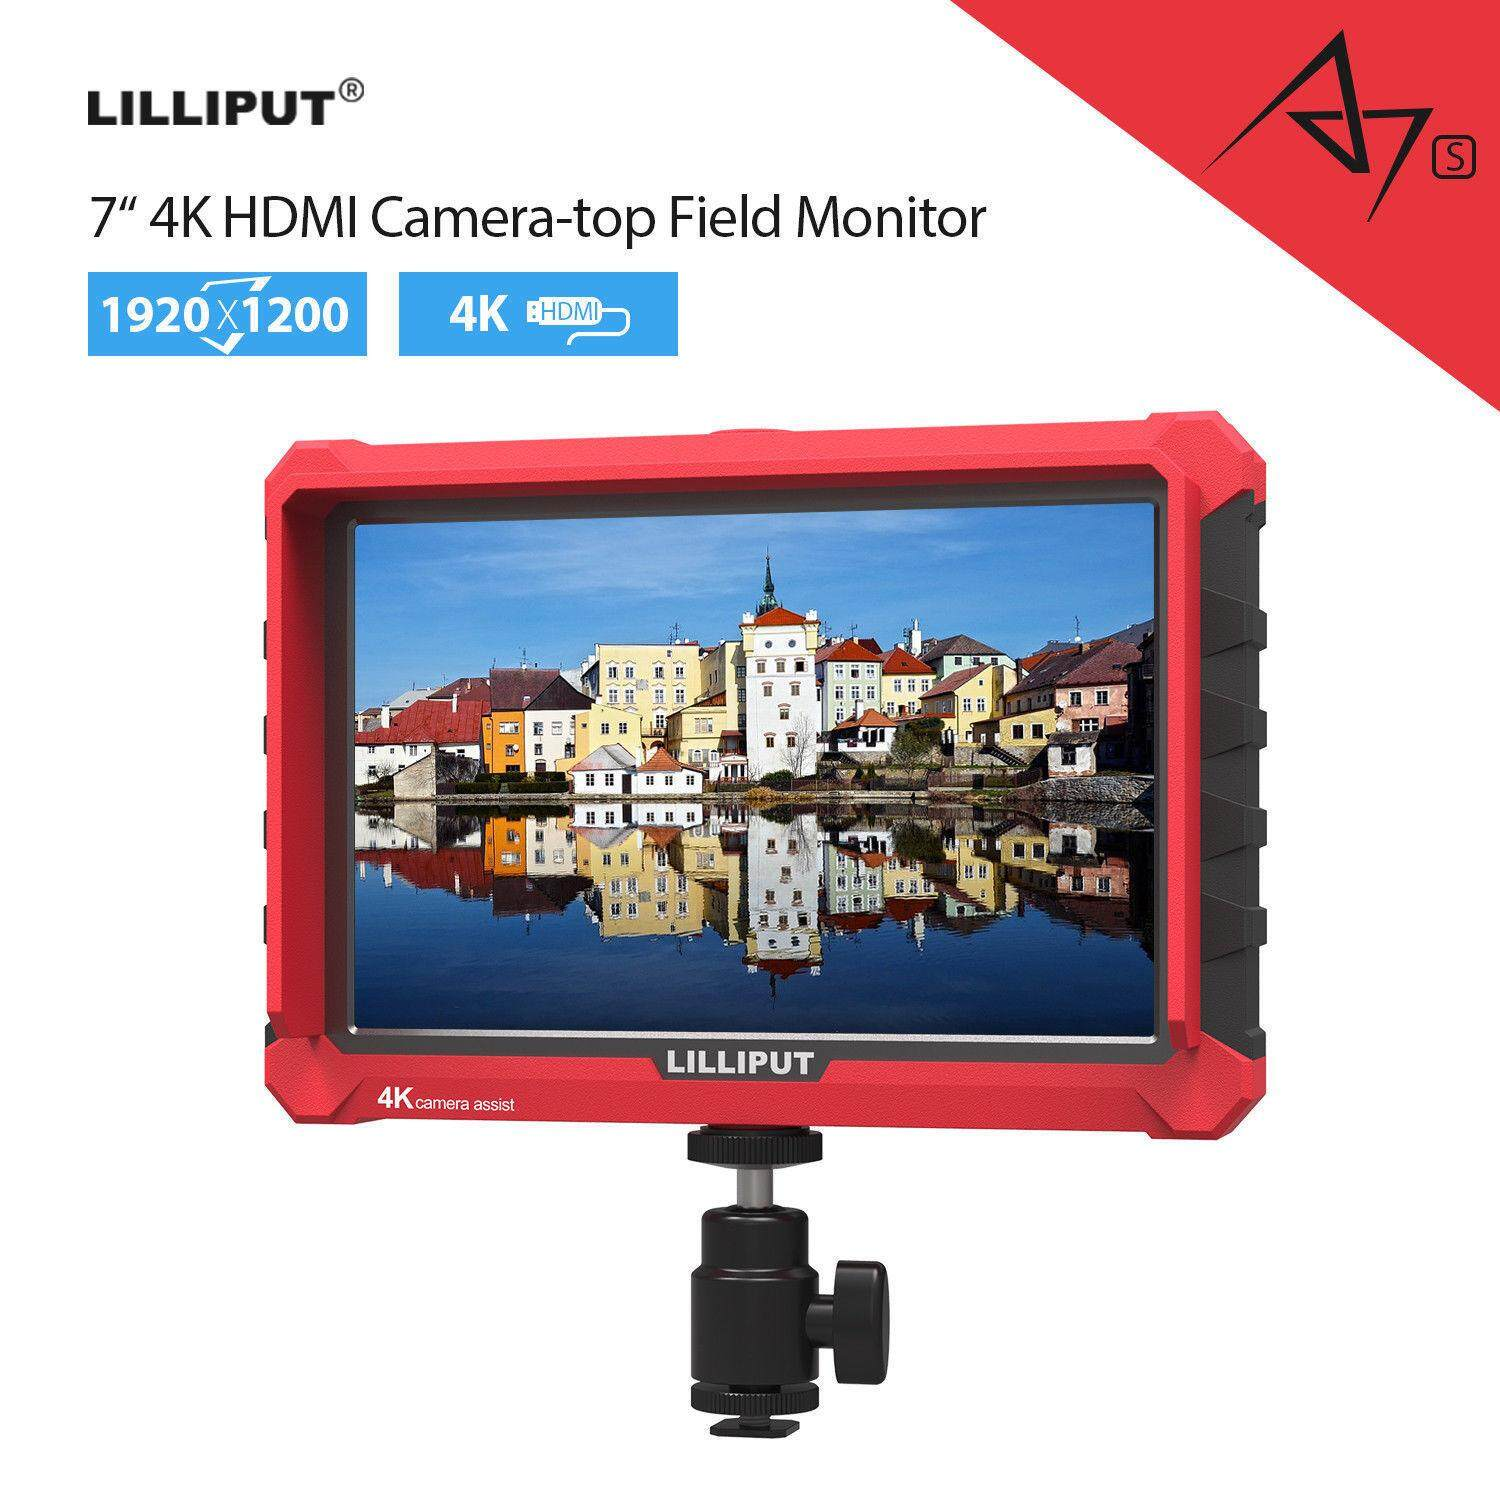 Lilliput A7s 7-inch 1920x1200 HD IPS Screen 500cd/m2 Camera Field Monitor 4K HDMI Input output Video For DSLR Mirrorless Camera Malaysia